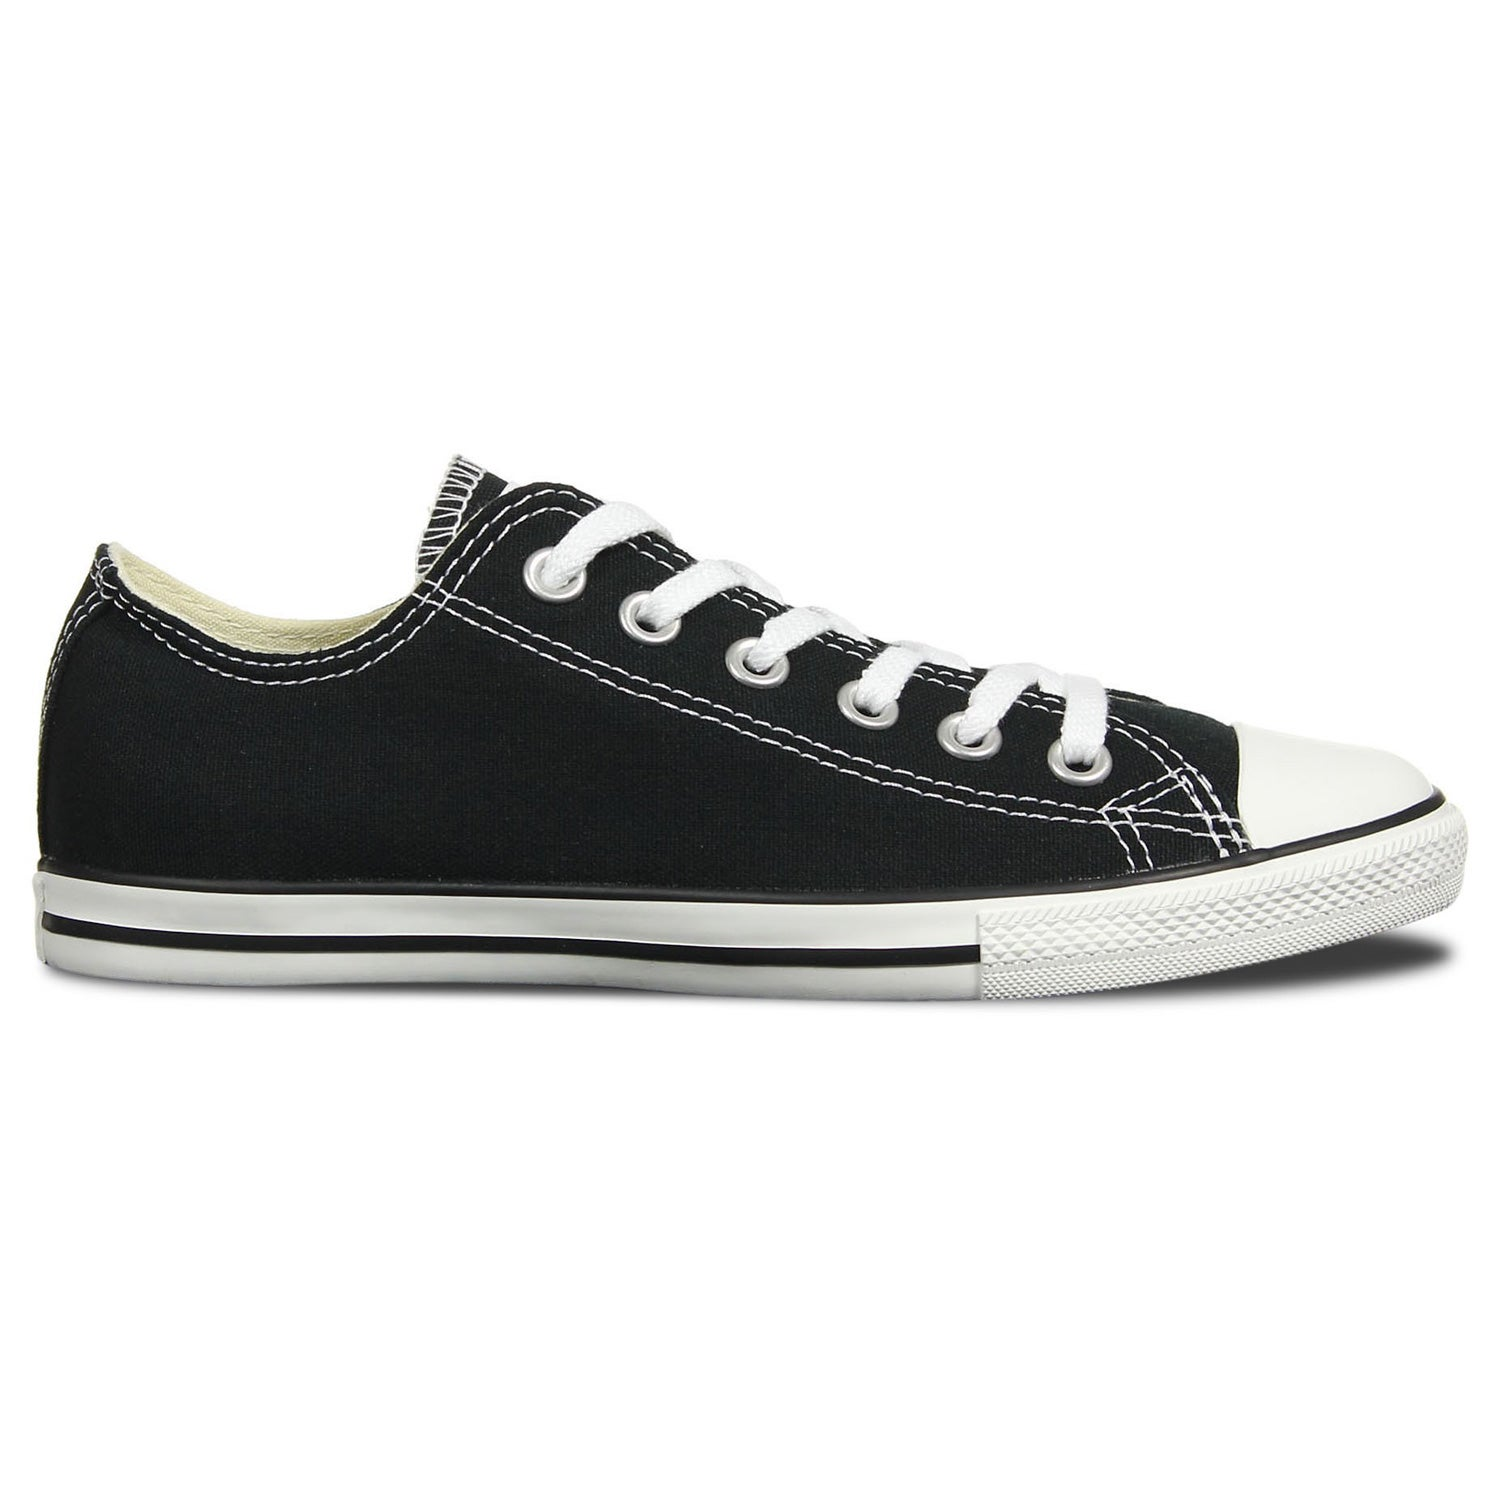 ba495f3055310a Converse Chuck Taylor All Stars Lean OX Shoe at Extremepie.com